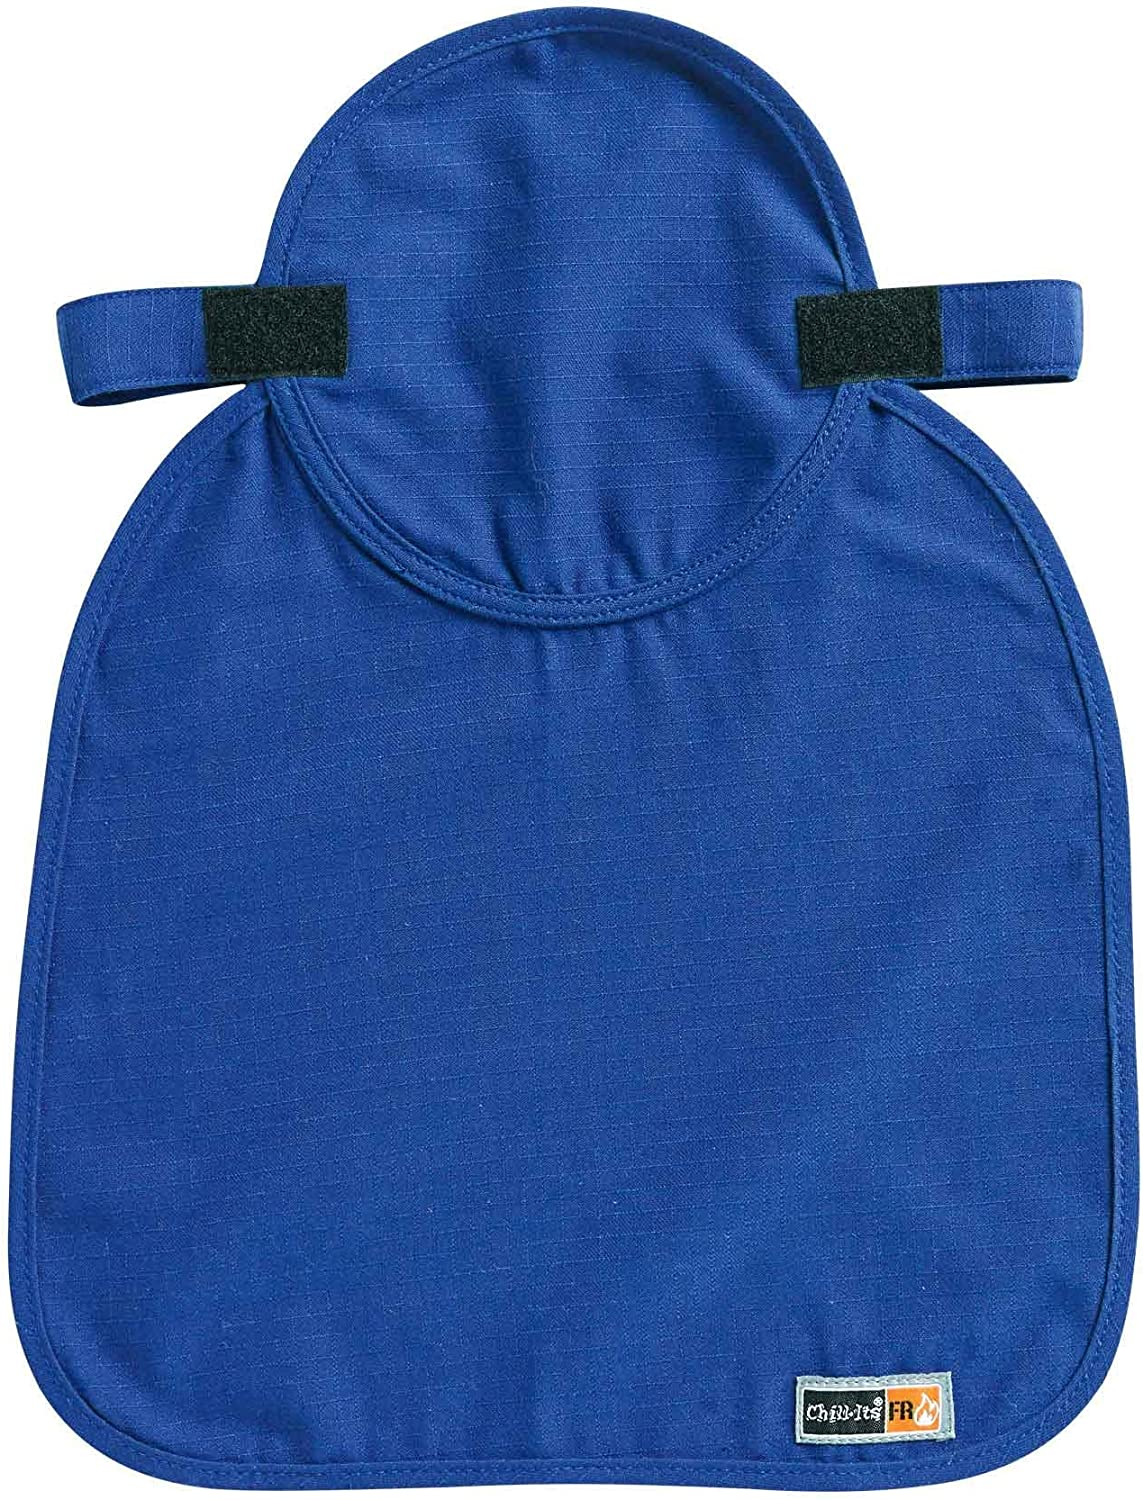 Blue 6717 CHILL-ITS B Acrylic Polymers Cooling Pad with Neck Shade,Cotton,Blue